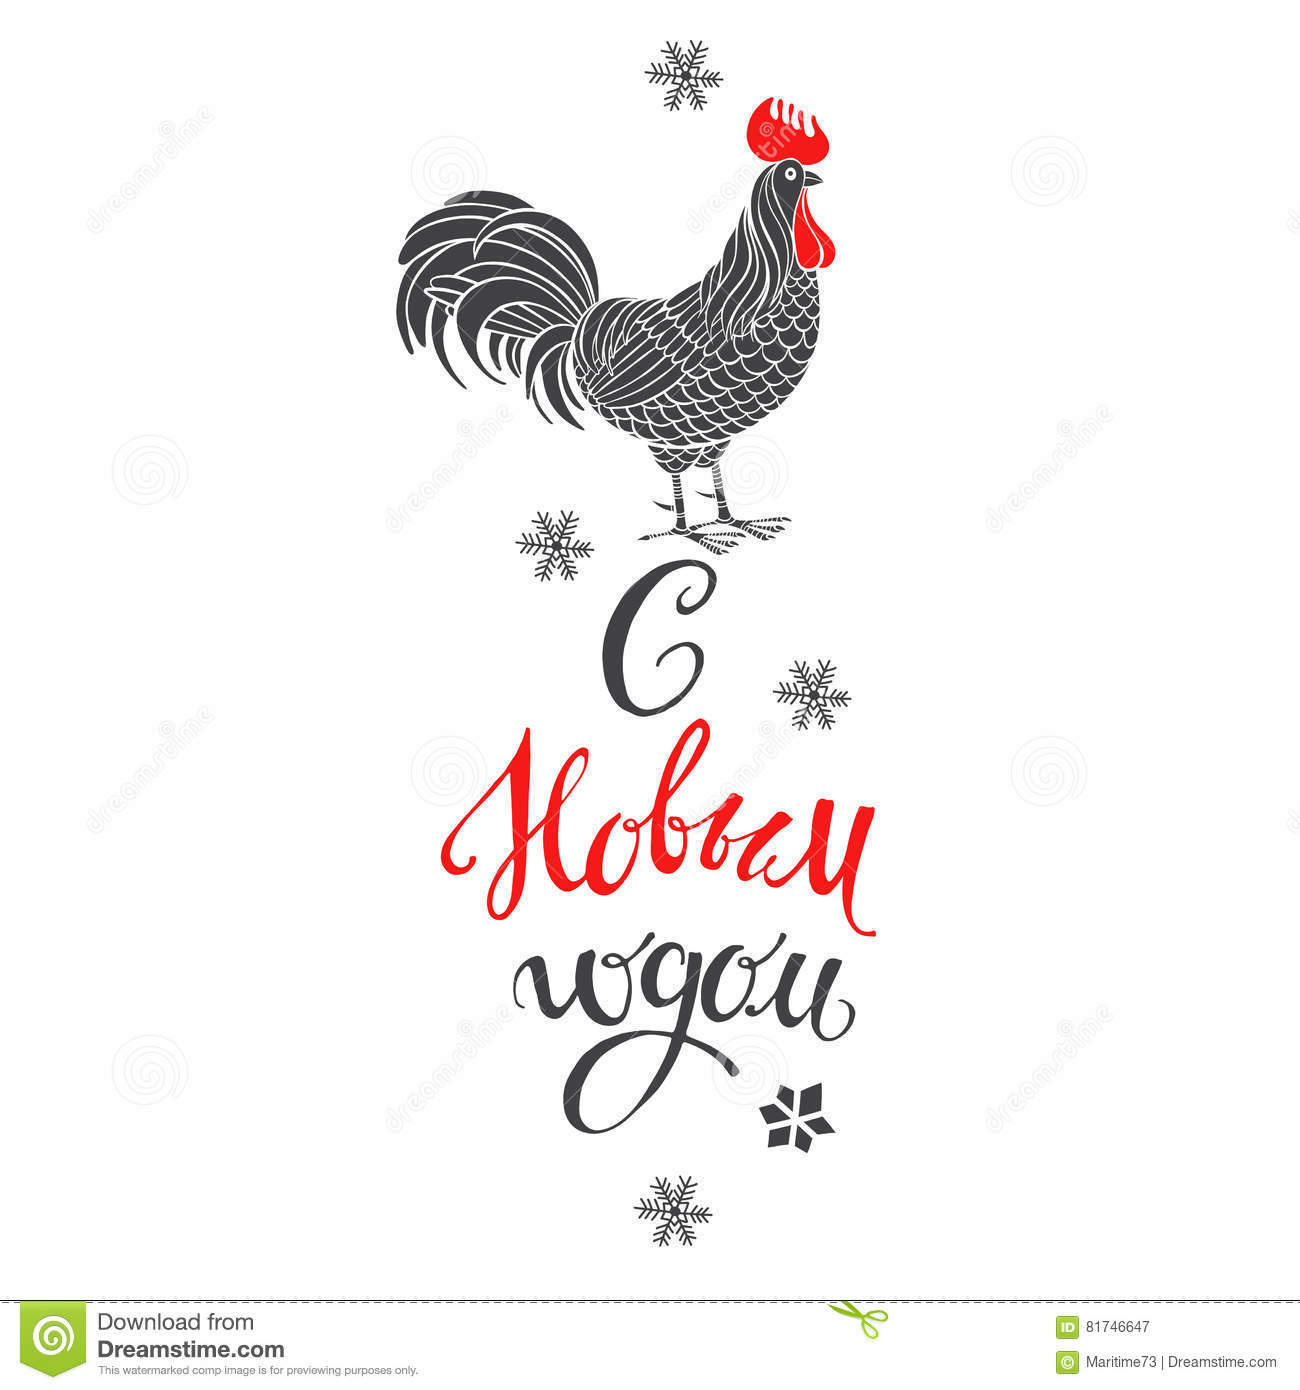 New year card with rooster and greeting in russian language rooster download new year card with rooster and greeting in russian language rooster animal symbol m4hsunfo